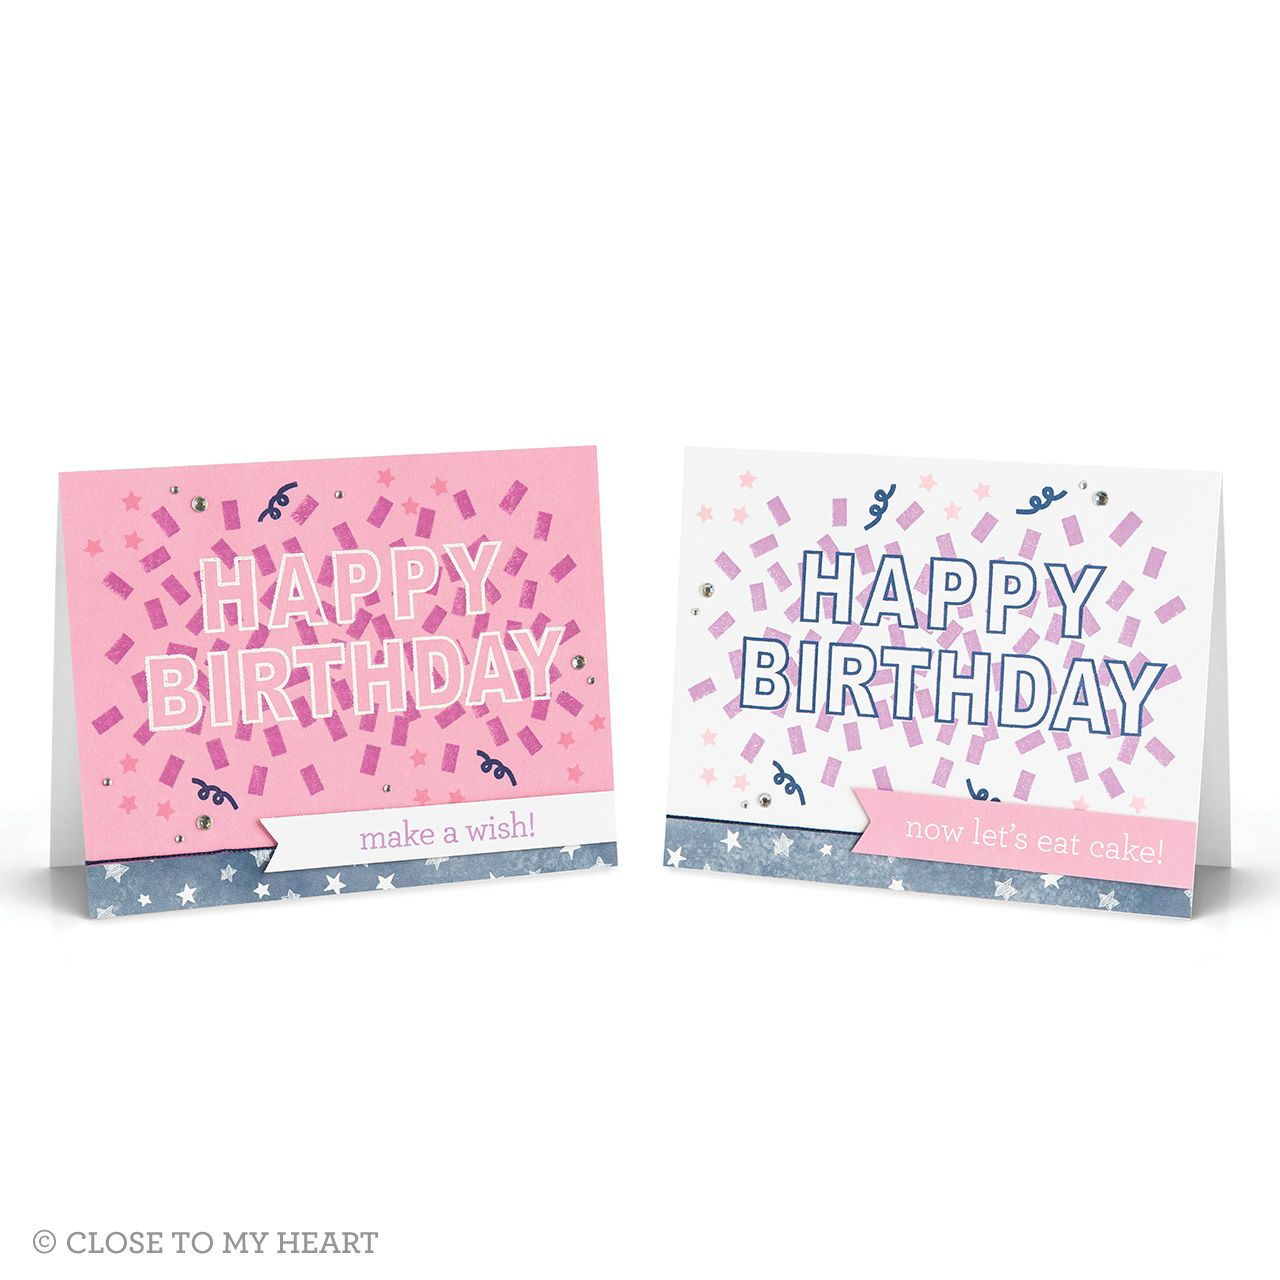 make your own birthday card to give here are two great